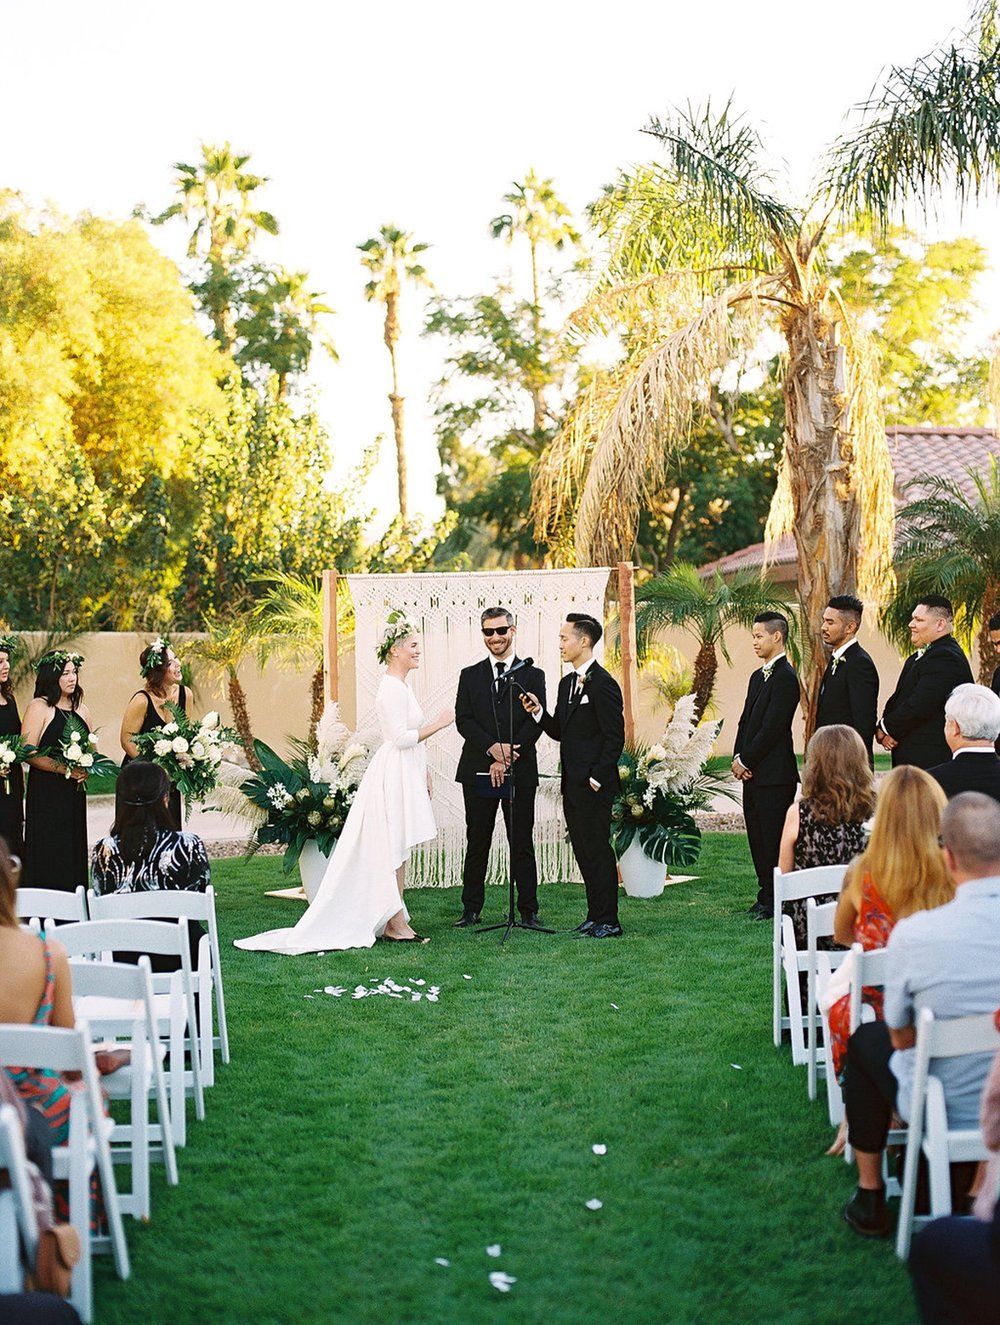 Phi and Alannas Backyard Wedding in Palm Springs California 23.jpg